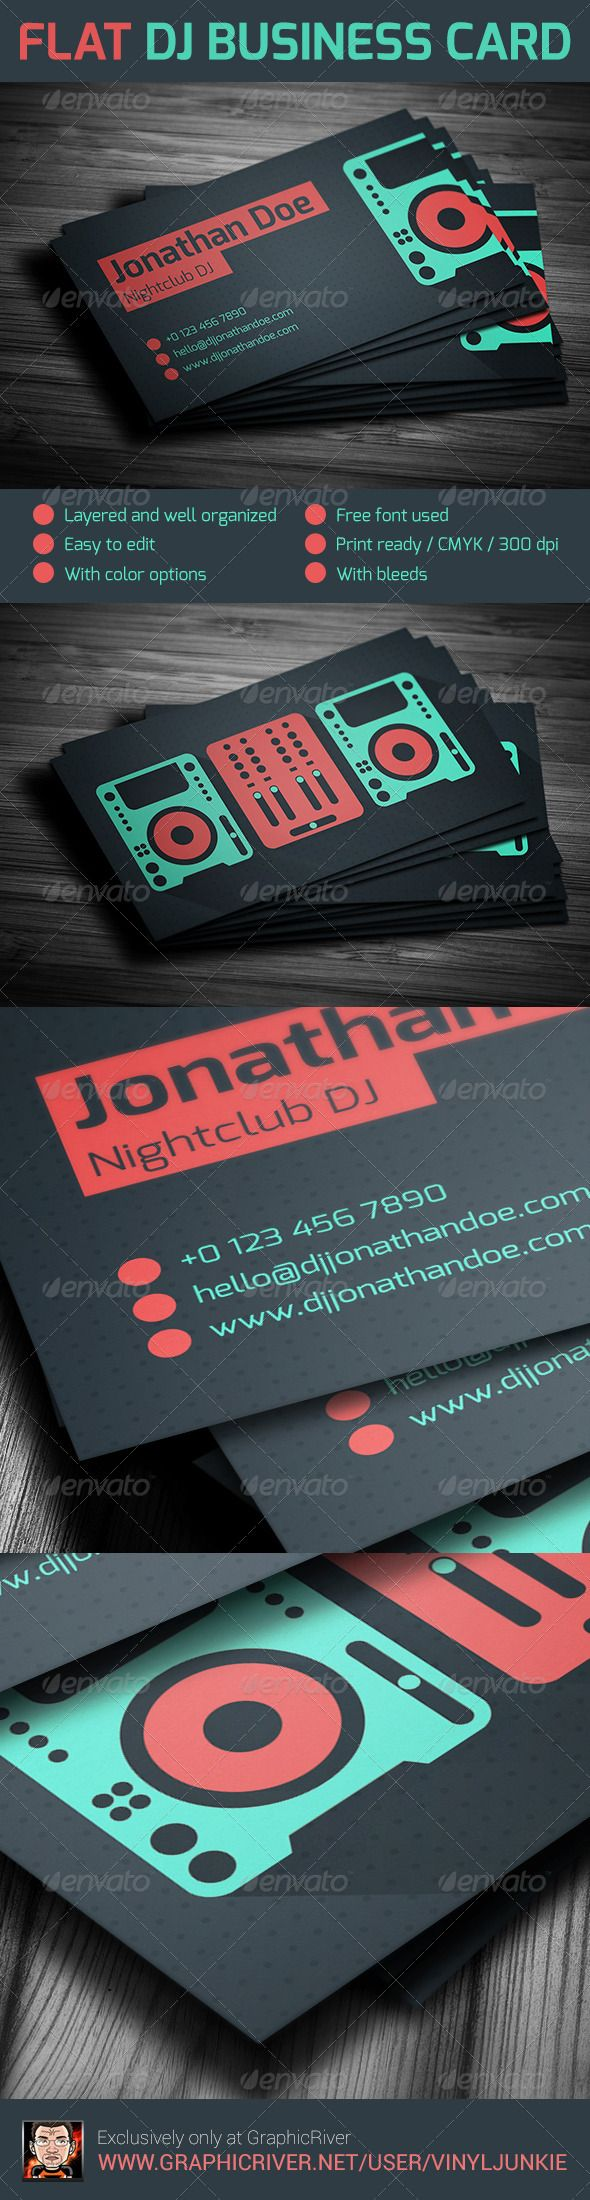 Flat dj business card dj business cards professional dj and card flat dj business card industry specific business cards accmission Choice Image